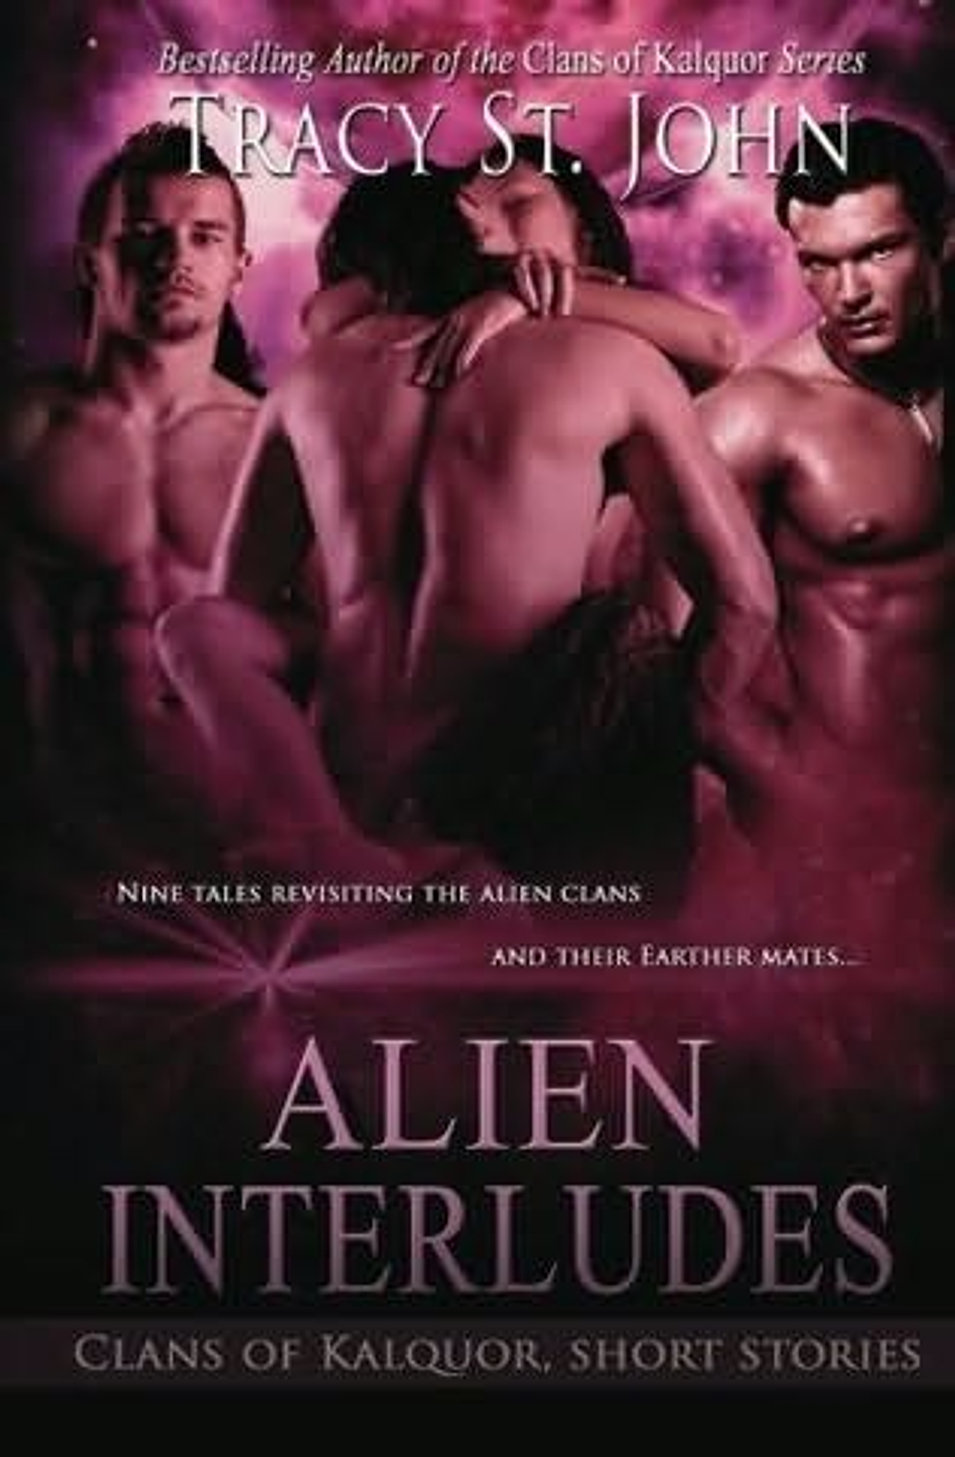 alien interludes updated.jpg